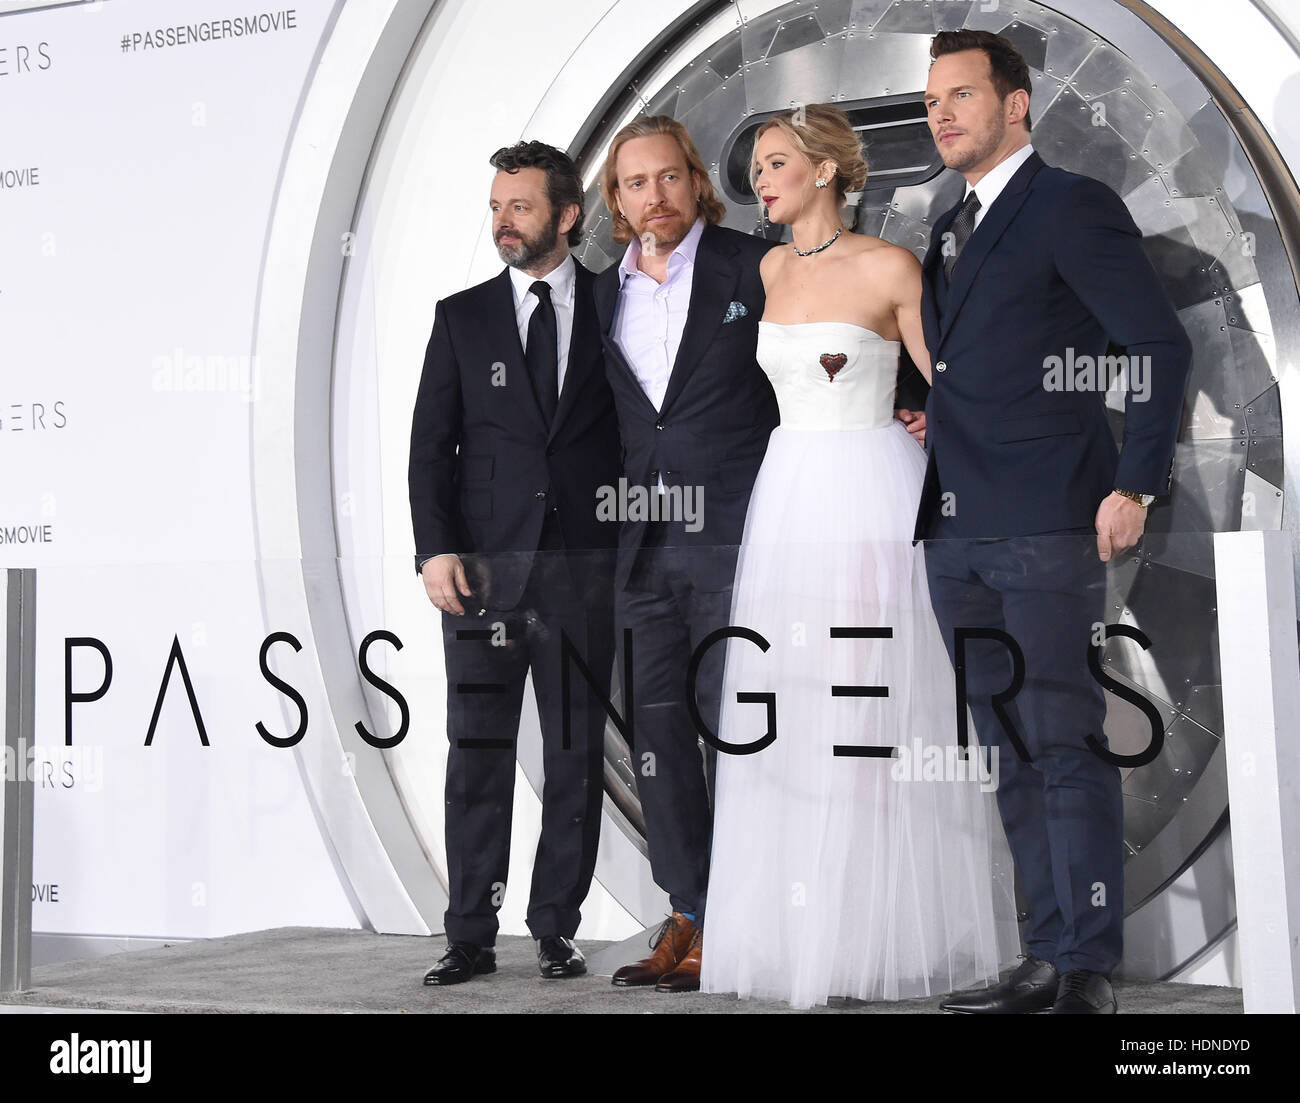 Westwood, Kalifornien, USA. 14. Dezember 2016. Michael Sheen, Morten Tyldum, Jennifer Lawrence und Chris Pratt kommt Stockbild